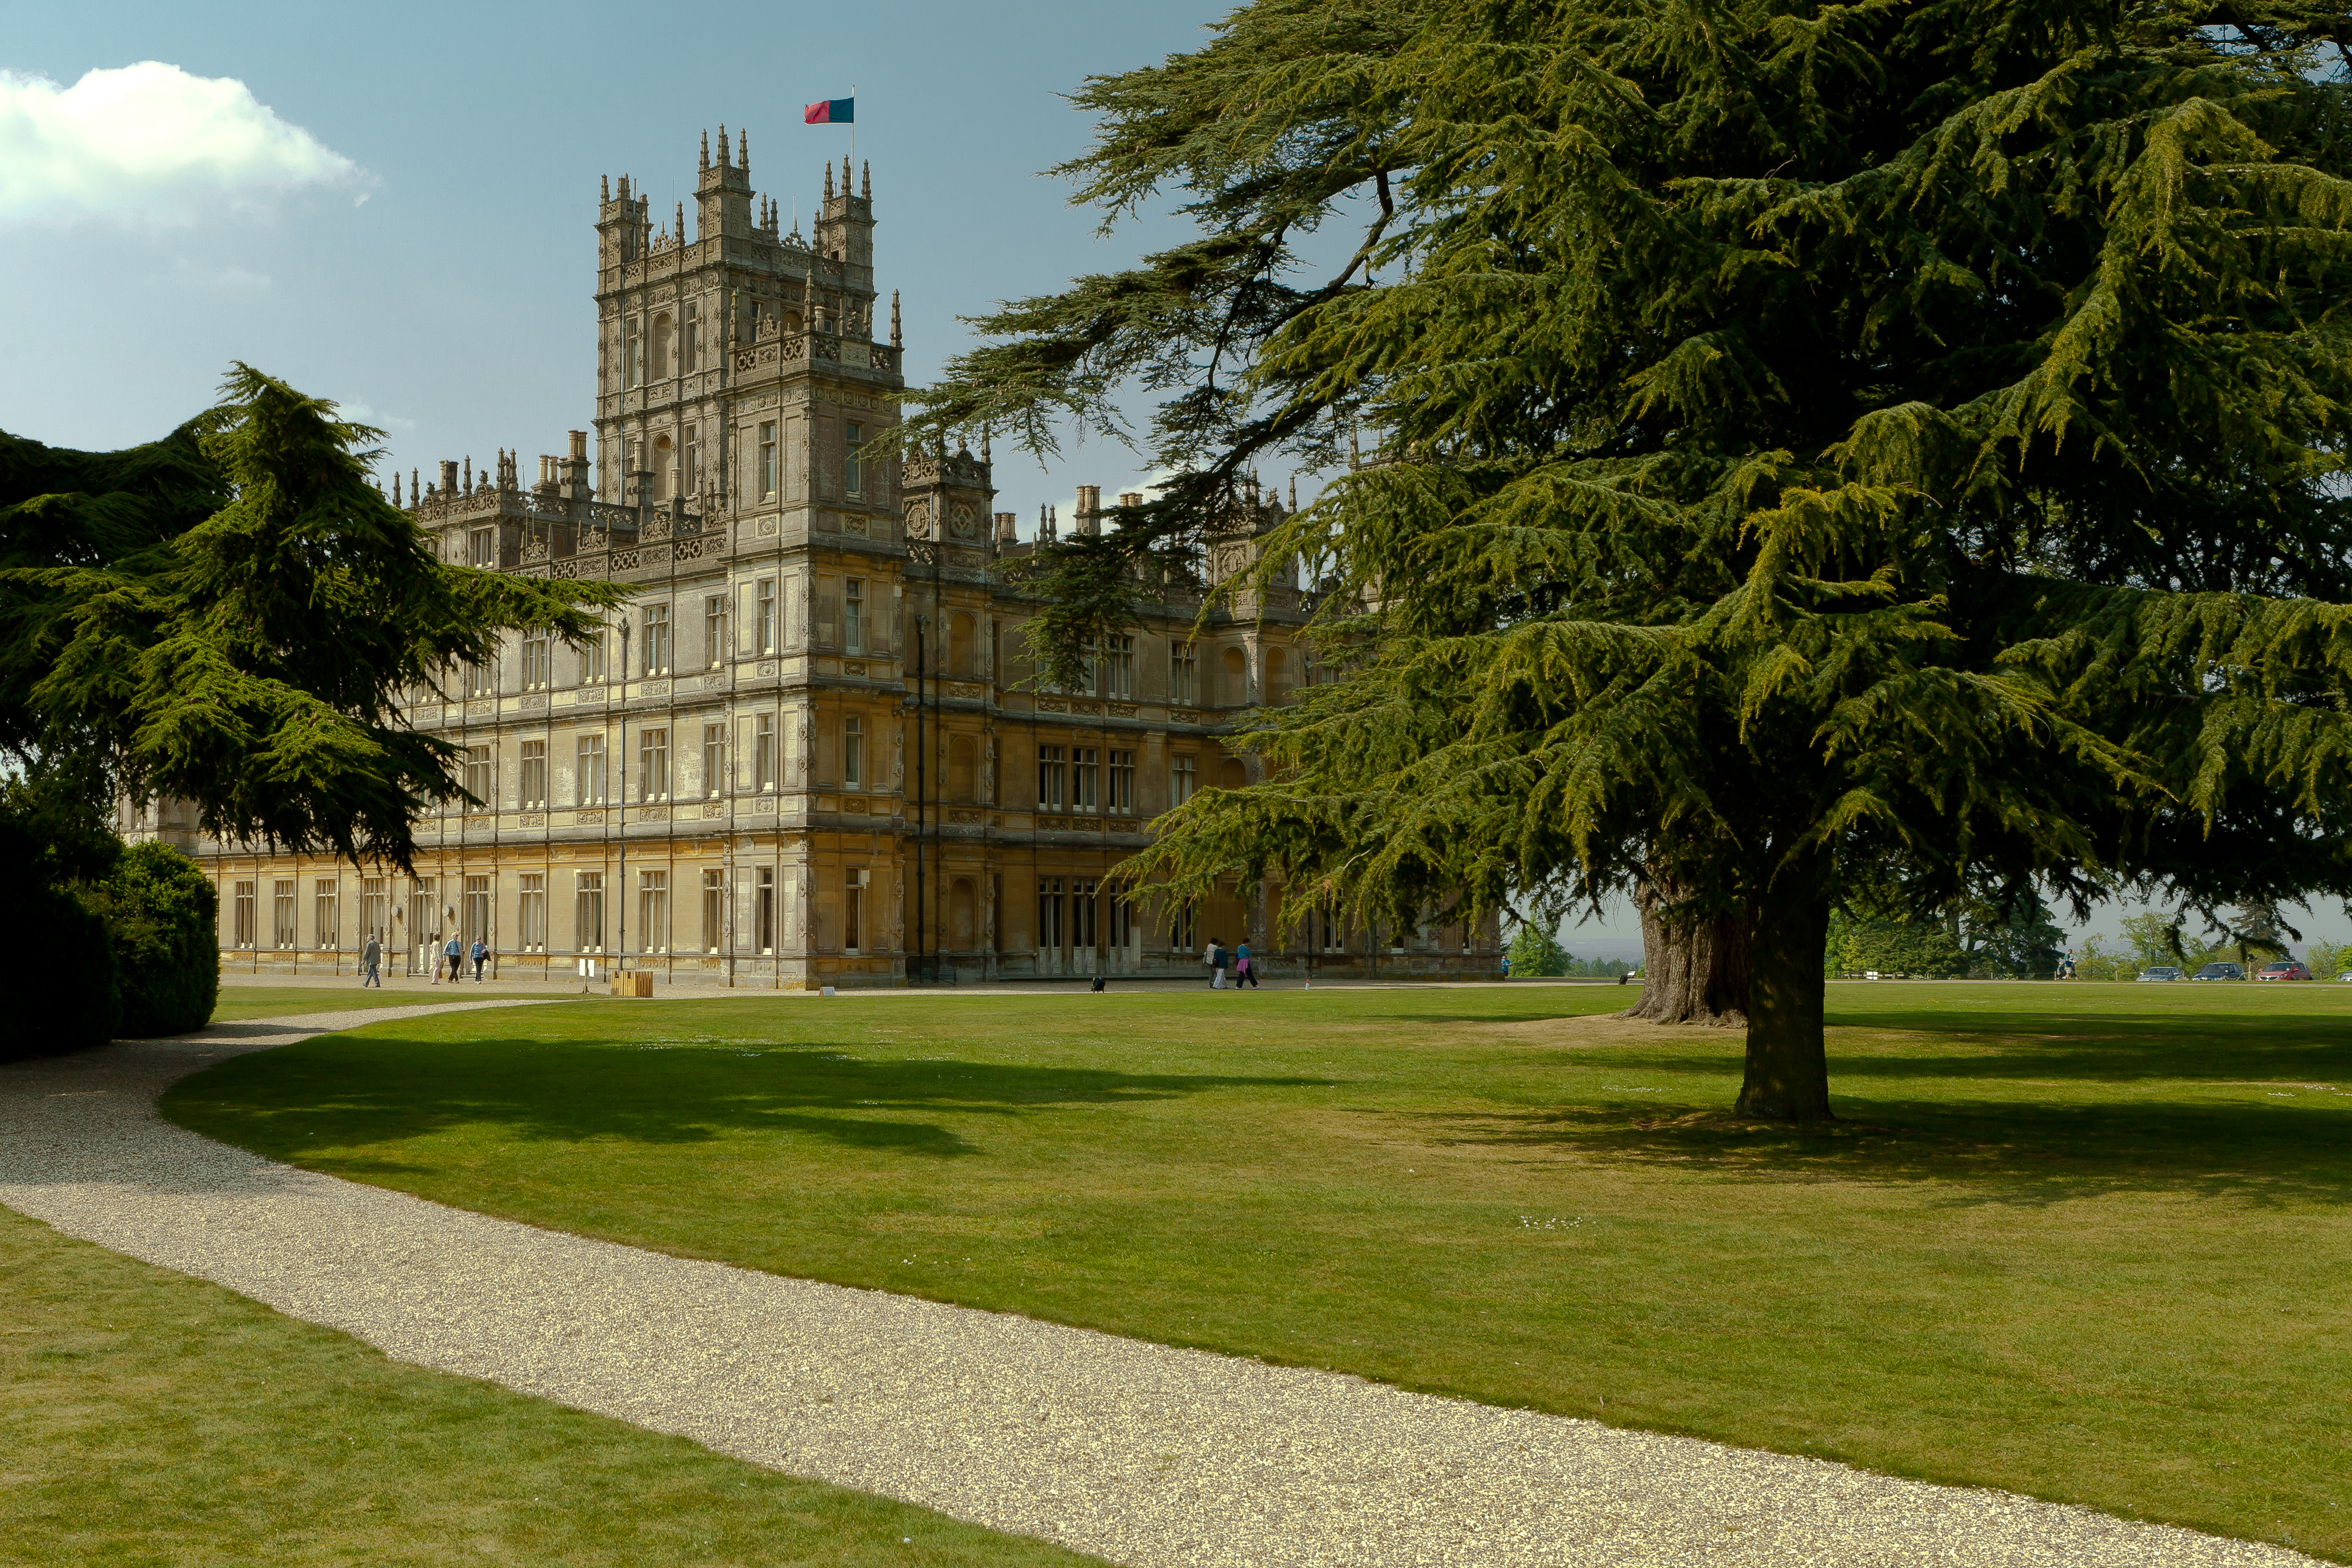 Downton abbey highclere castle flickr photo sharing - Downton abbey chateau ...